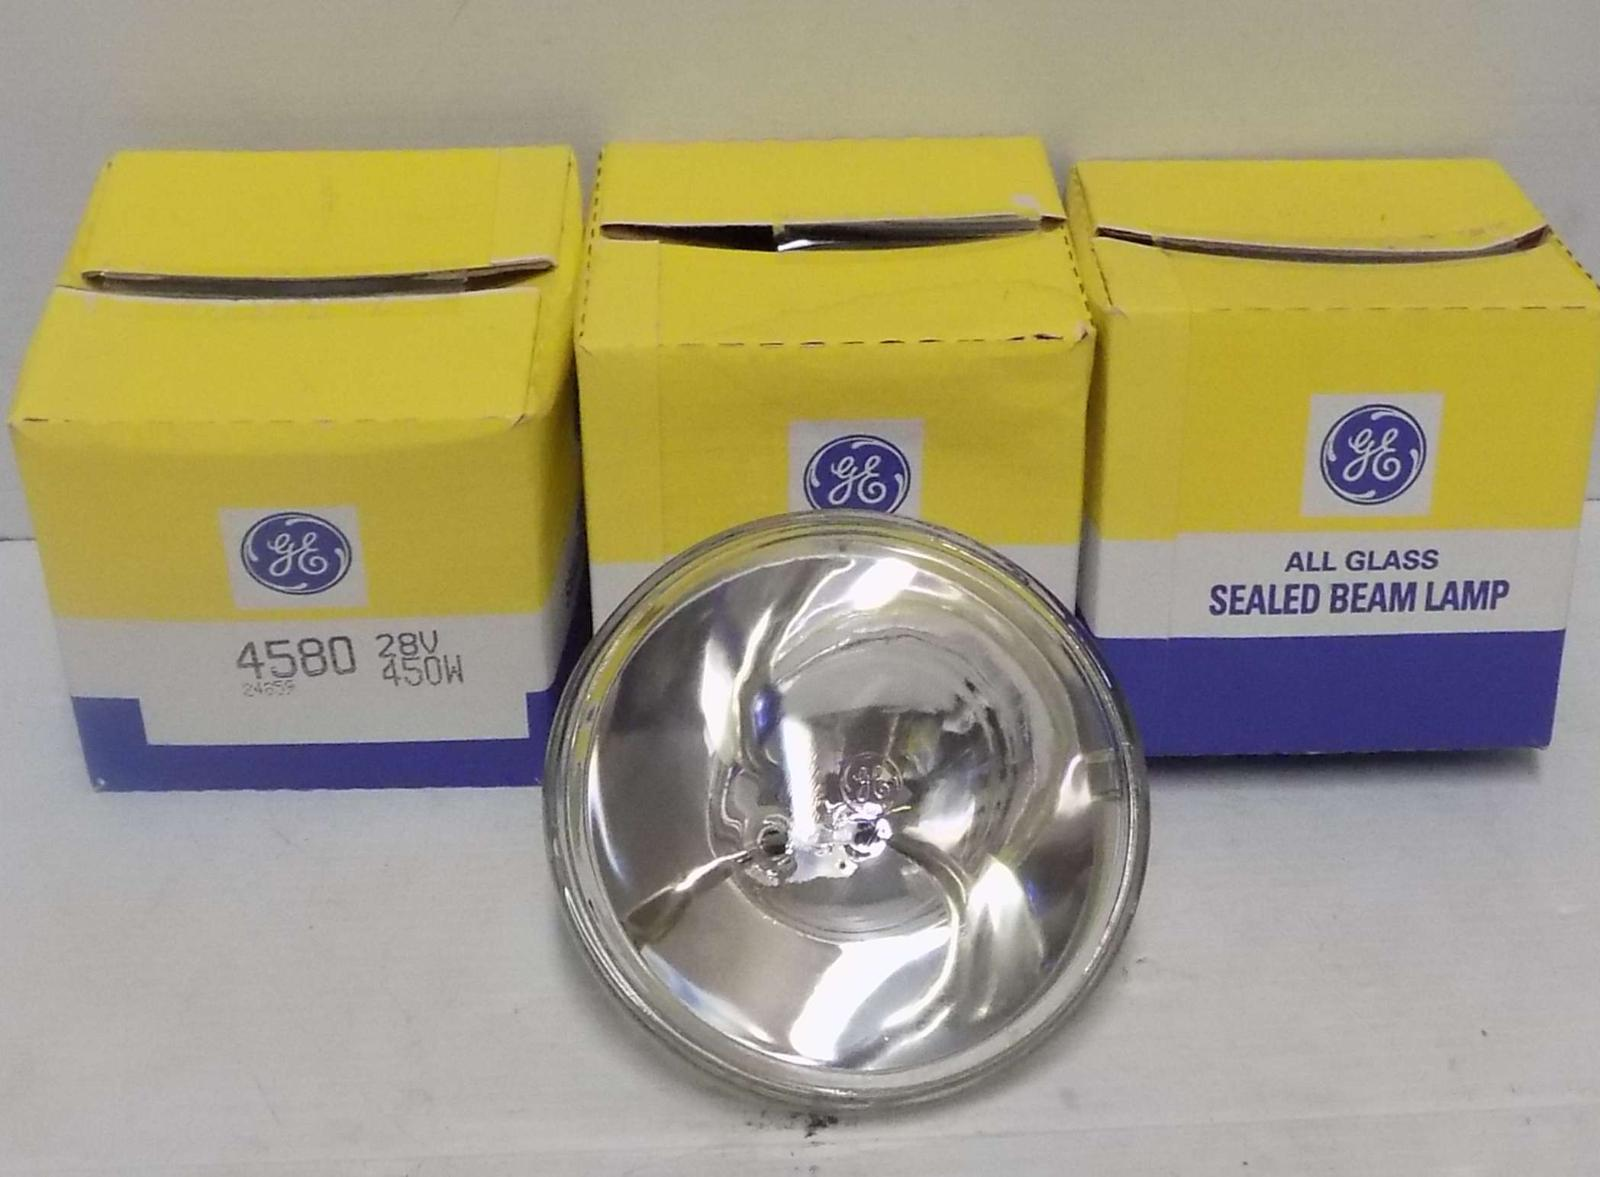 General Electric GE4580-28V-450W Sealed Beam Lamps (180 units)